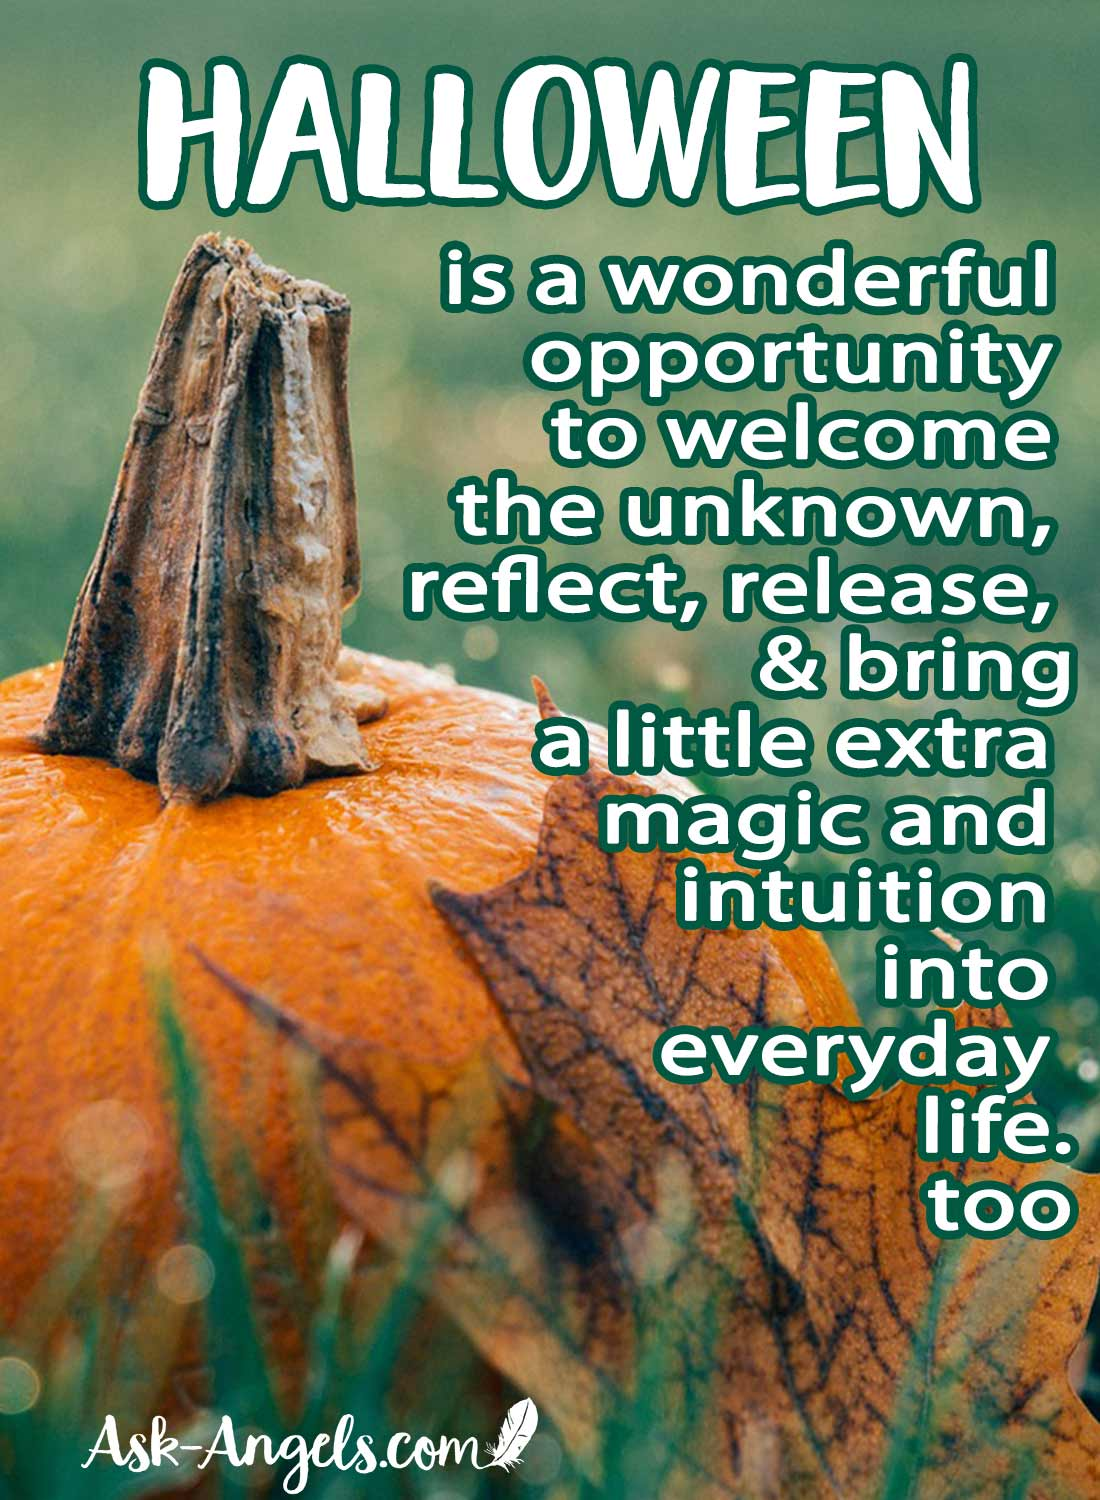 Halloween as a great opportunity to welcome the unknown, reflect, release, and bring a little extra magic and intuition into everyday life.